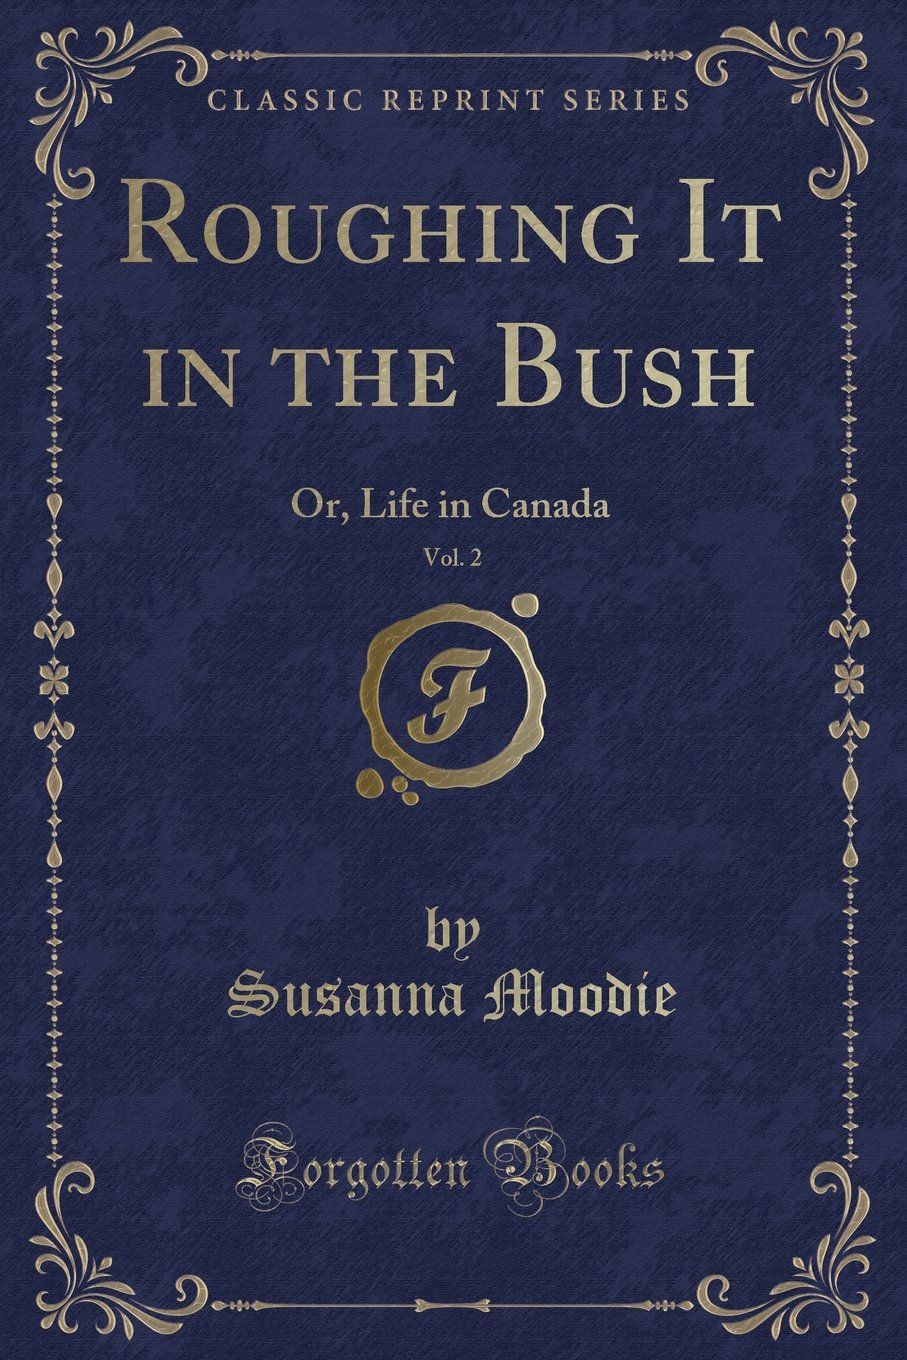 Roughing It in the Bush, Vol. 2: Or, Life in Canada (Classic Reprint) ebook